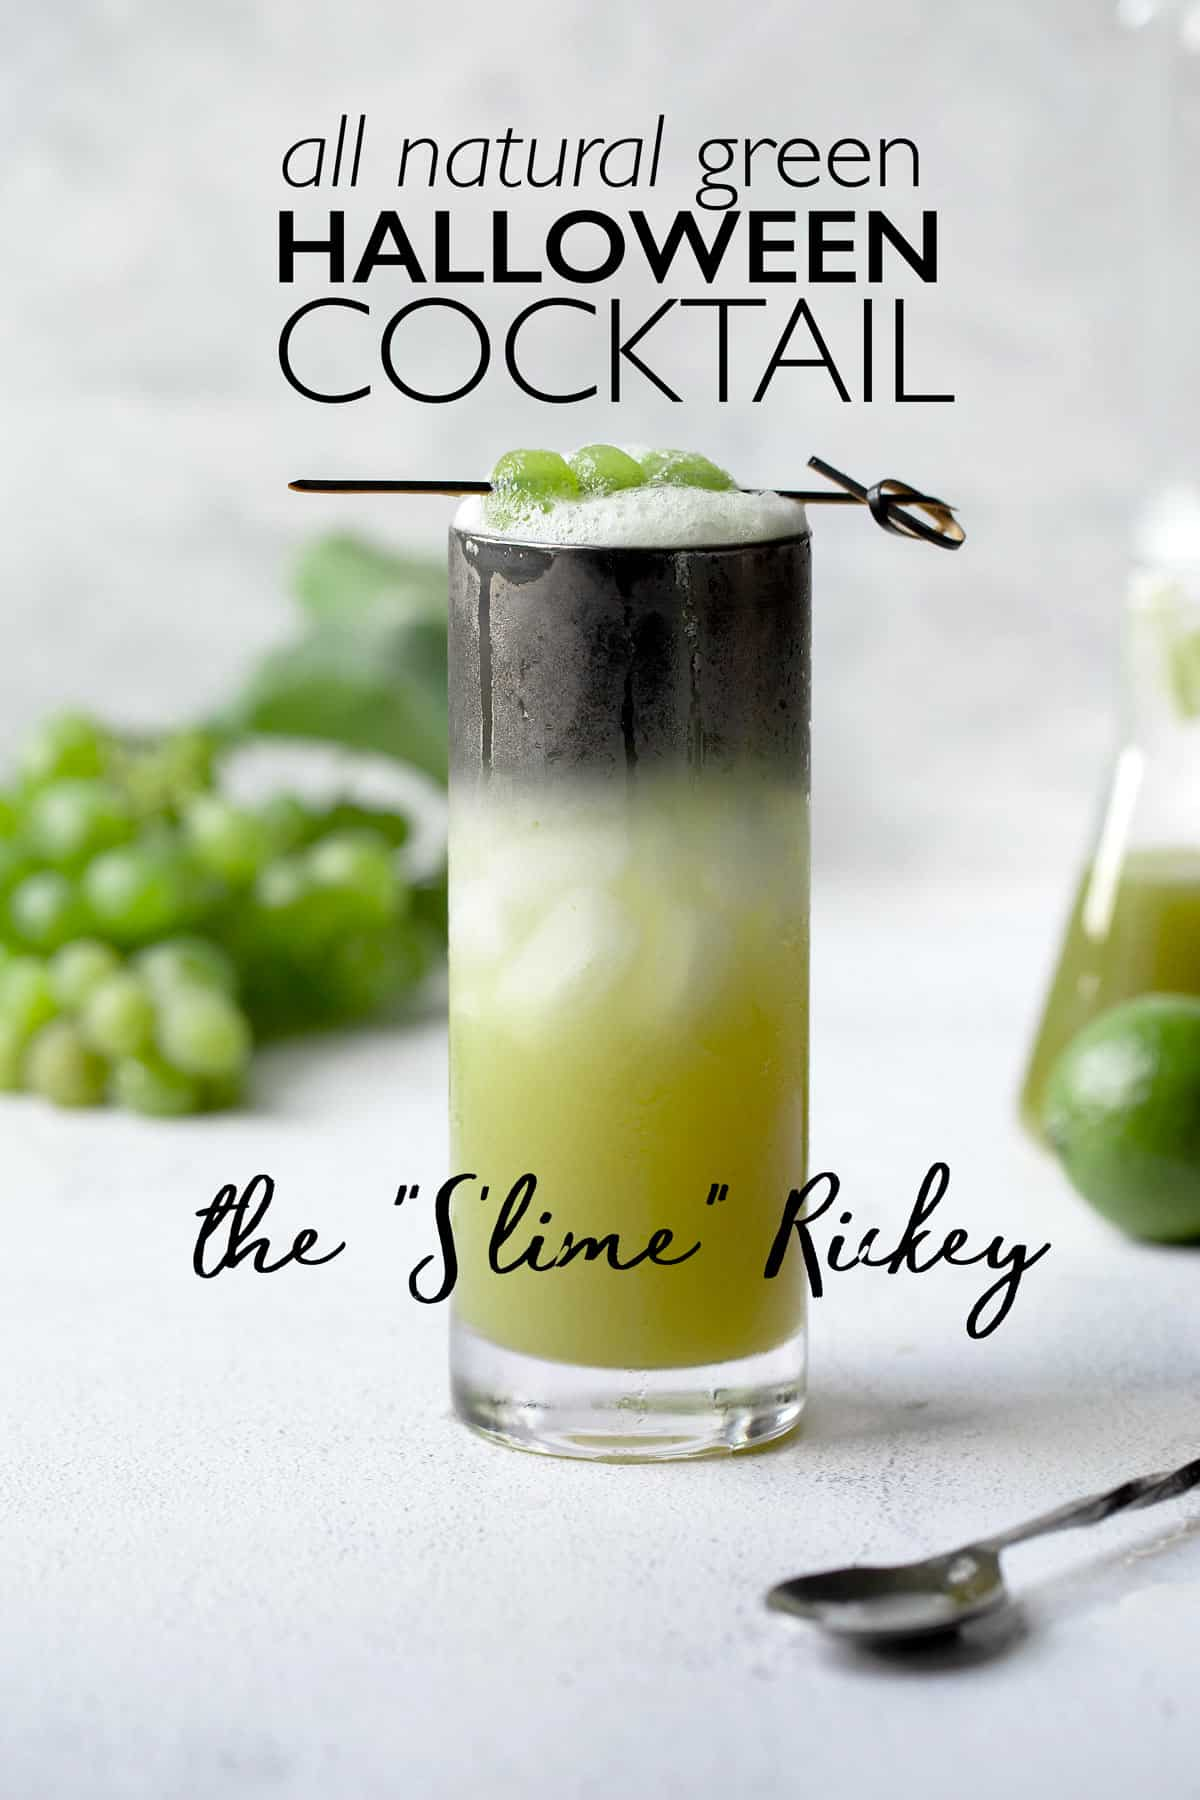 Slime Rickey's are an all natural green colored update to the classic gin rickey that's perfect served as a halloween cocktail! green cocktail | gin rickey recipe | Halloween cocktails